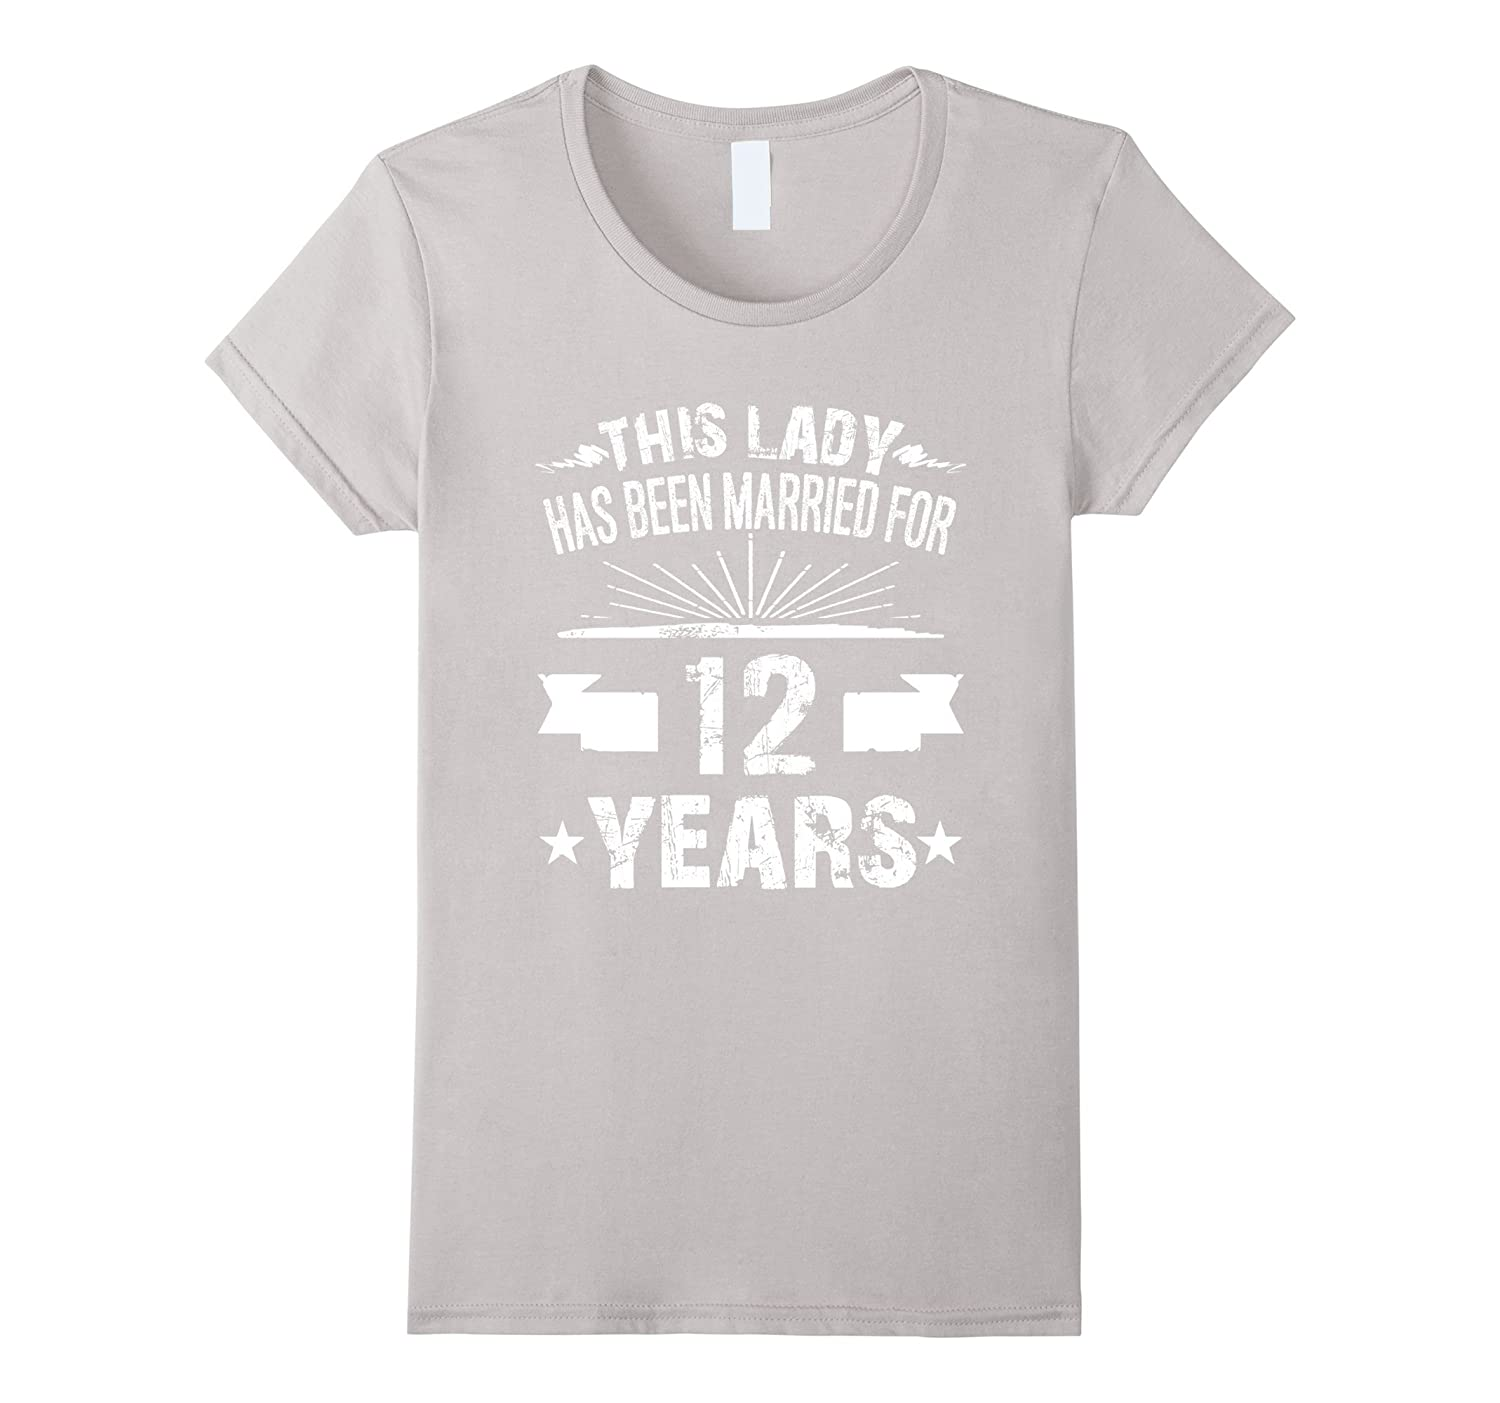 12th Wedding Anniversary Gifts 12 Year Shirt For Her-Teeae